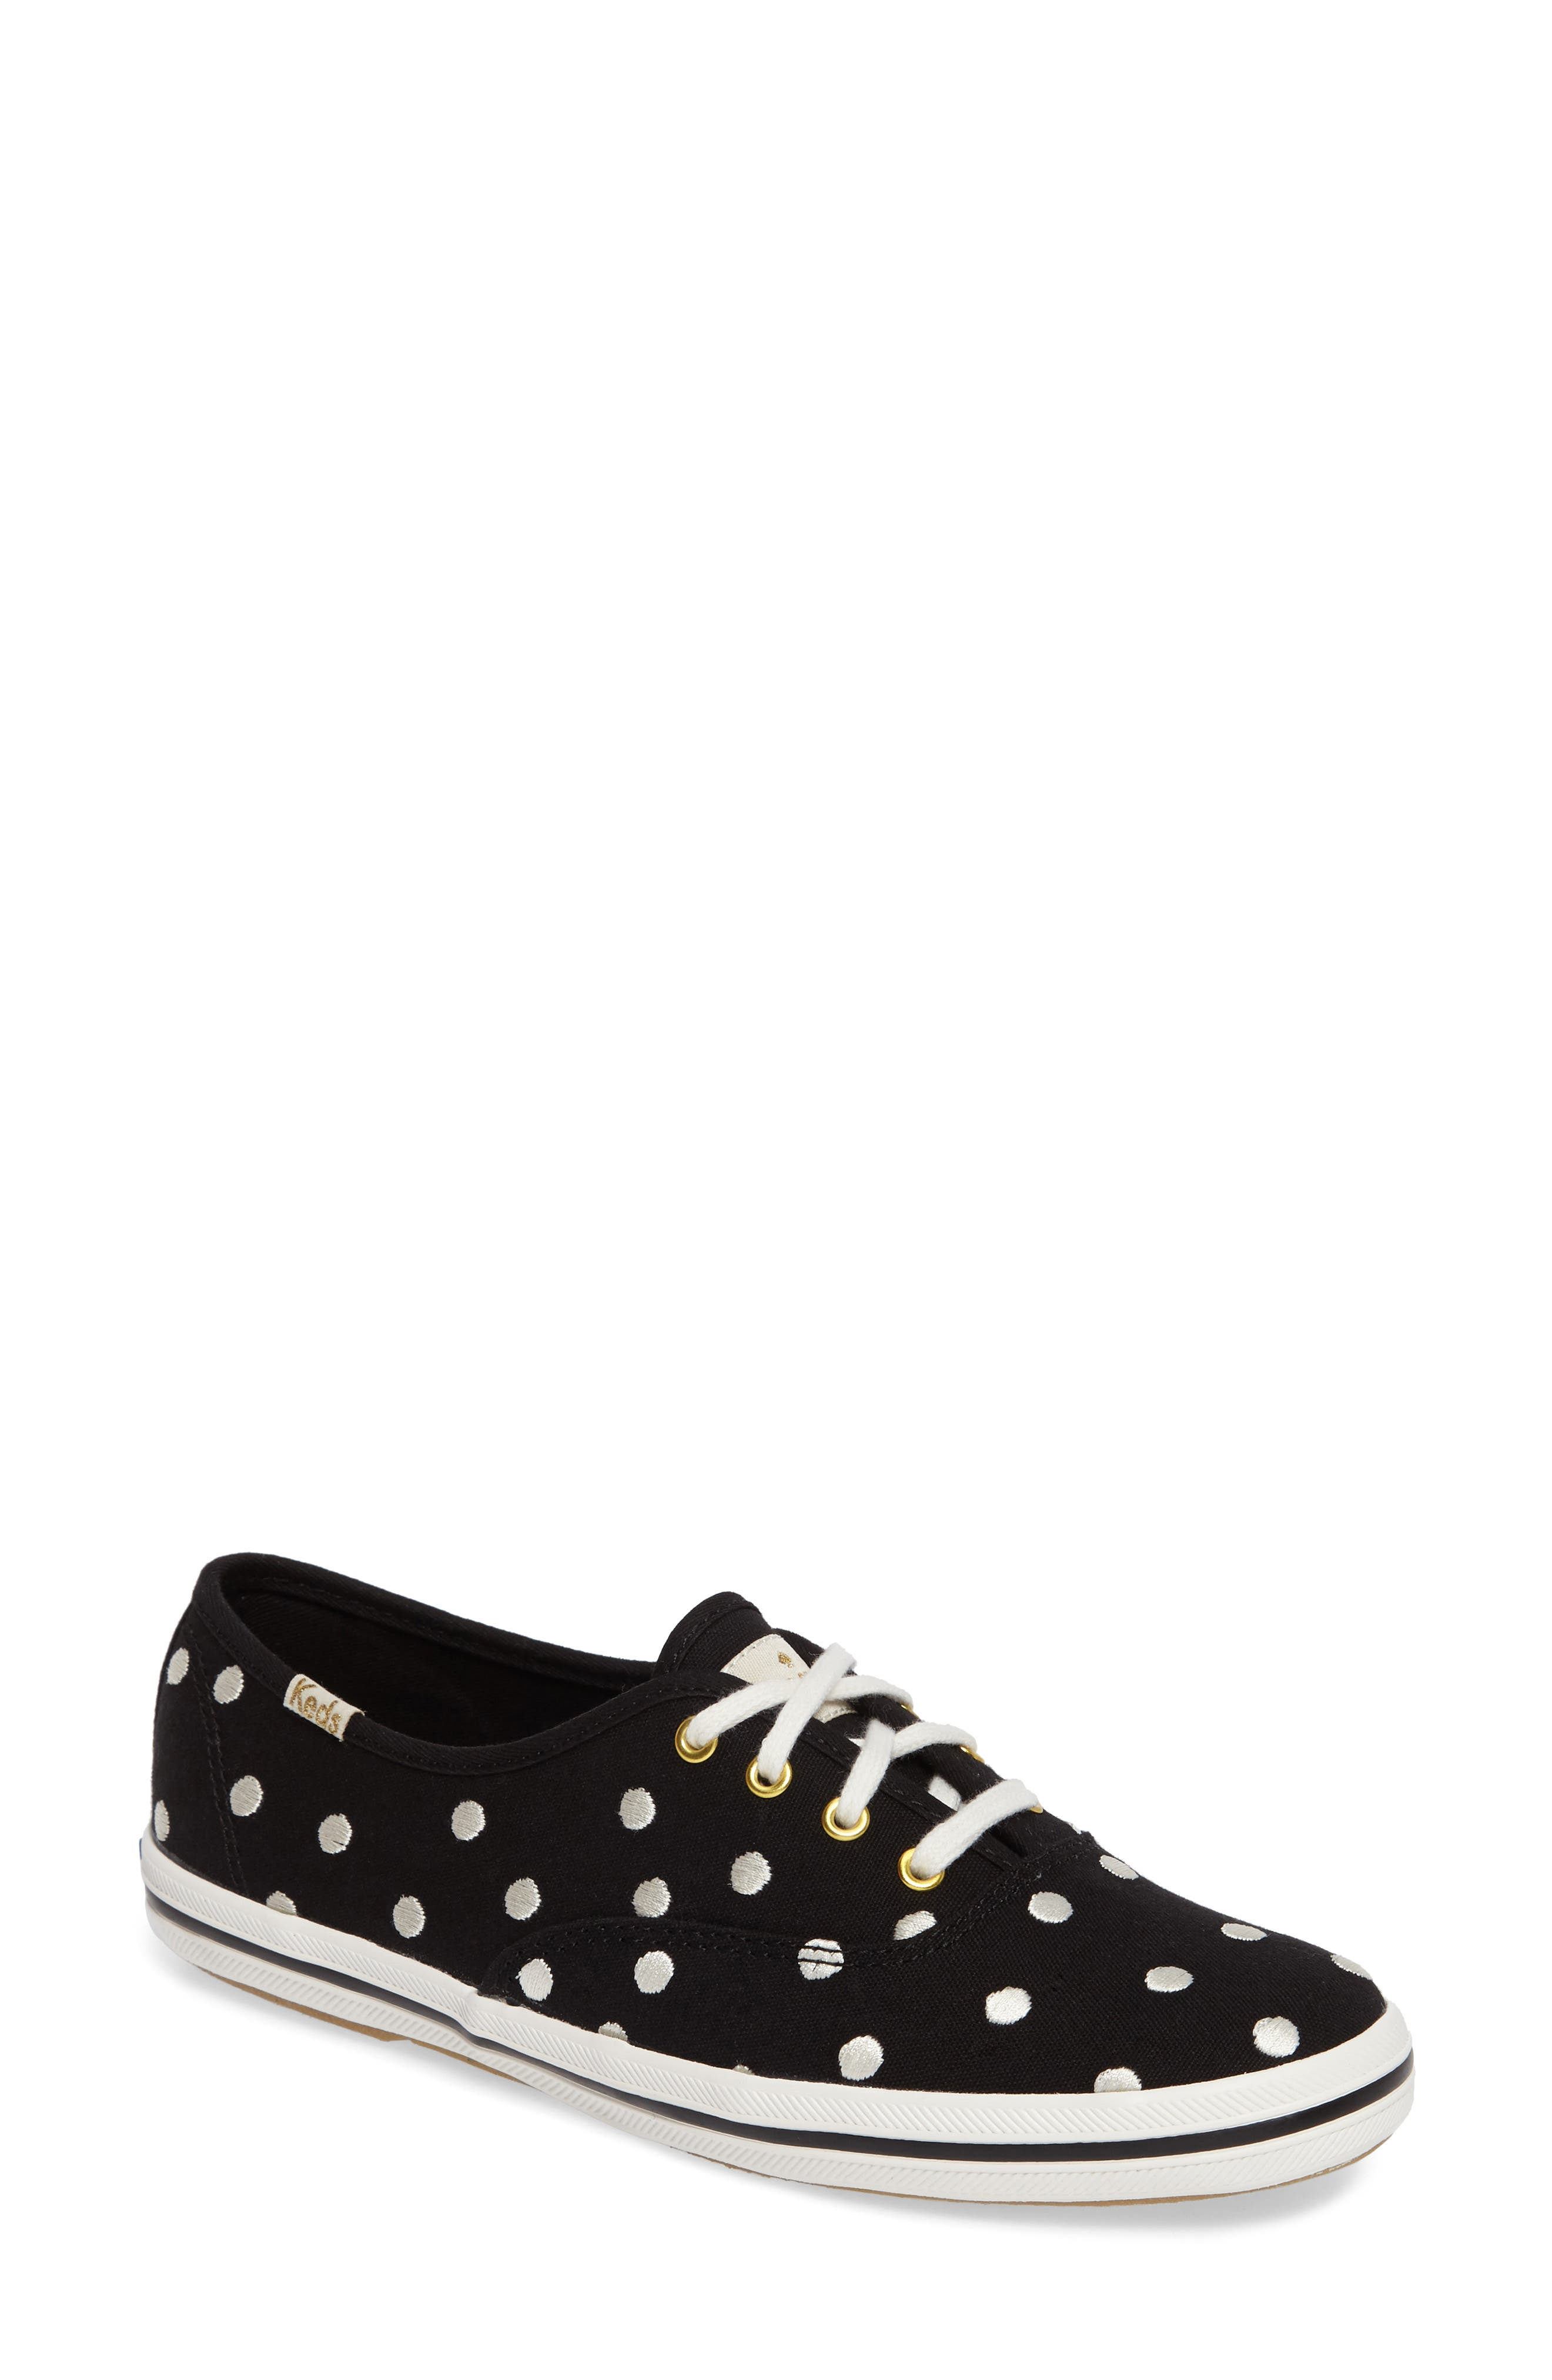 Keds<sup>®</sup> x kate spade new york champion sneaker,                         Main,                         color,